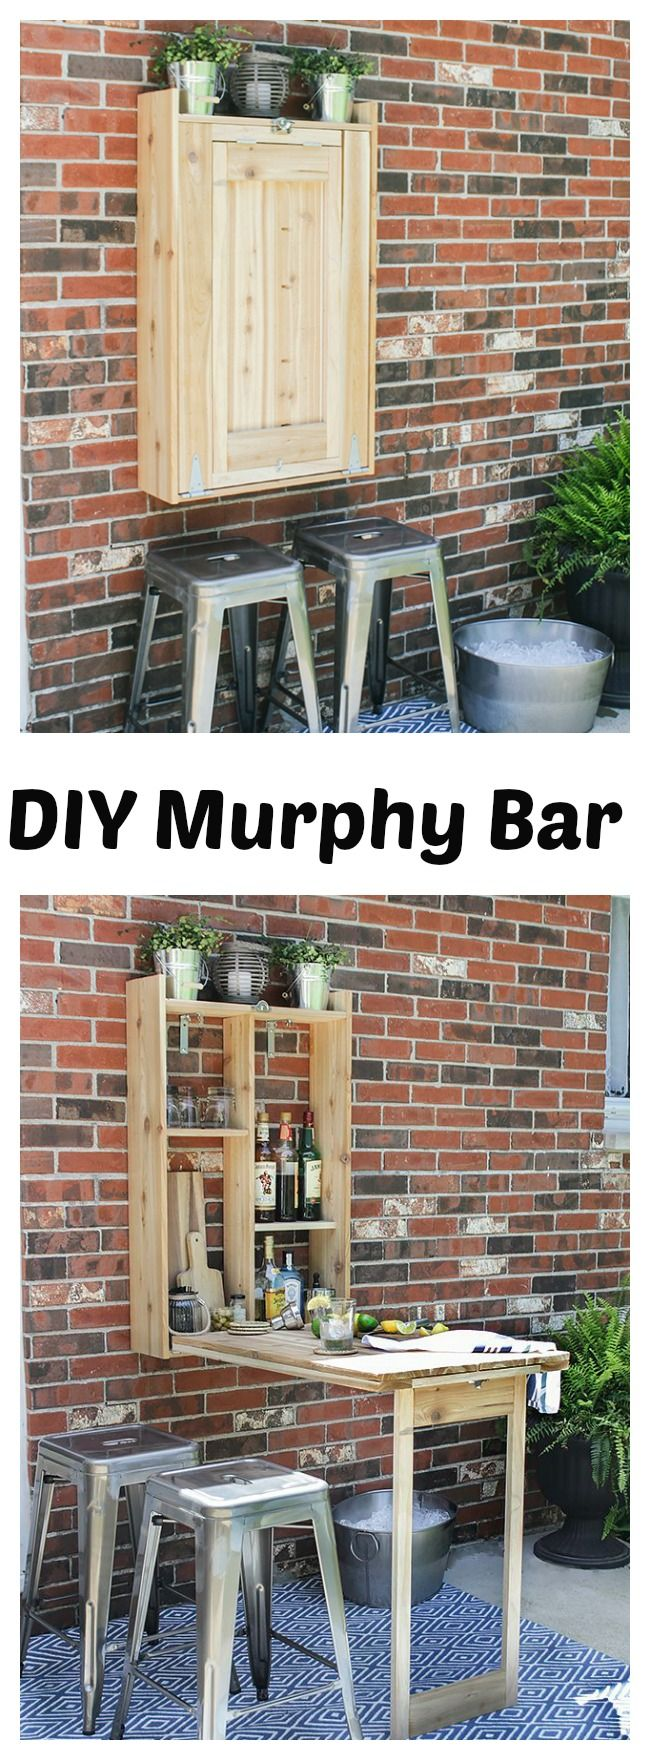 diy cool fold down outdoor murphy bar very creative idea scrap